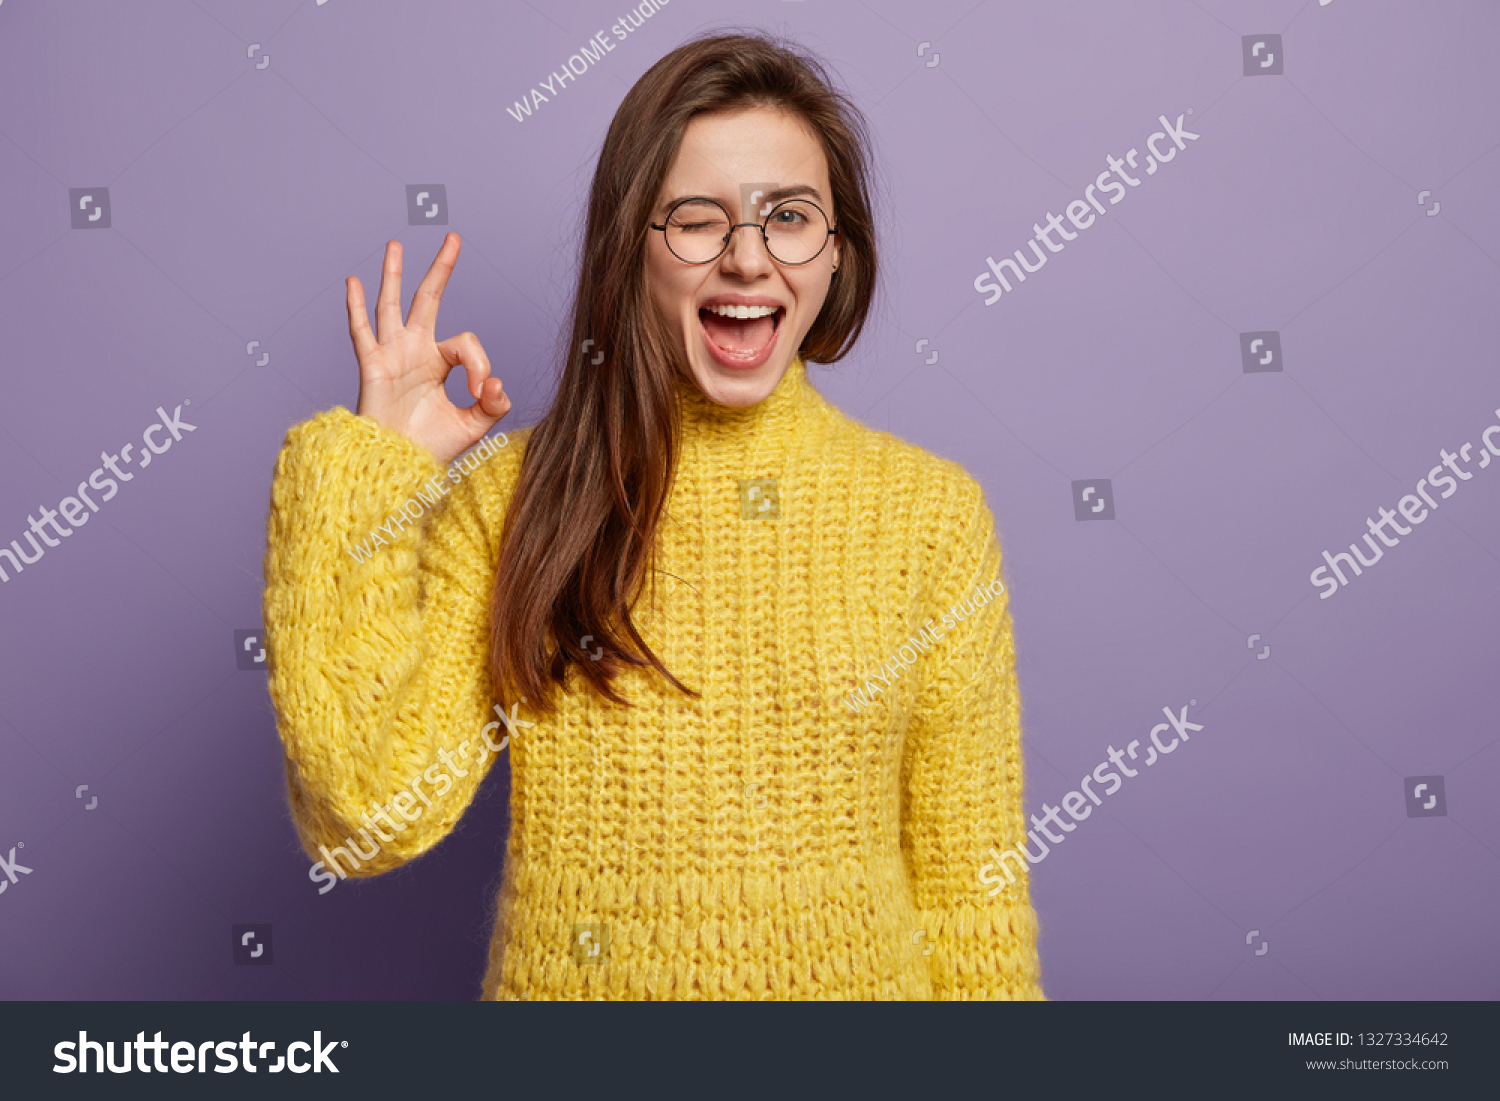 Waist up shot of pleased young woman says good job or well done, makes okay gesture, demonstrates symbol of approval and like, blinks eye, wears spectacles, knitted yellow jumper, stands indoor #1327334642